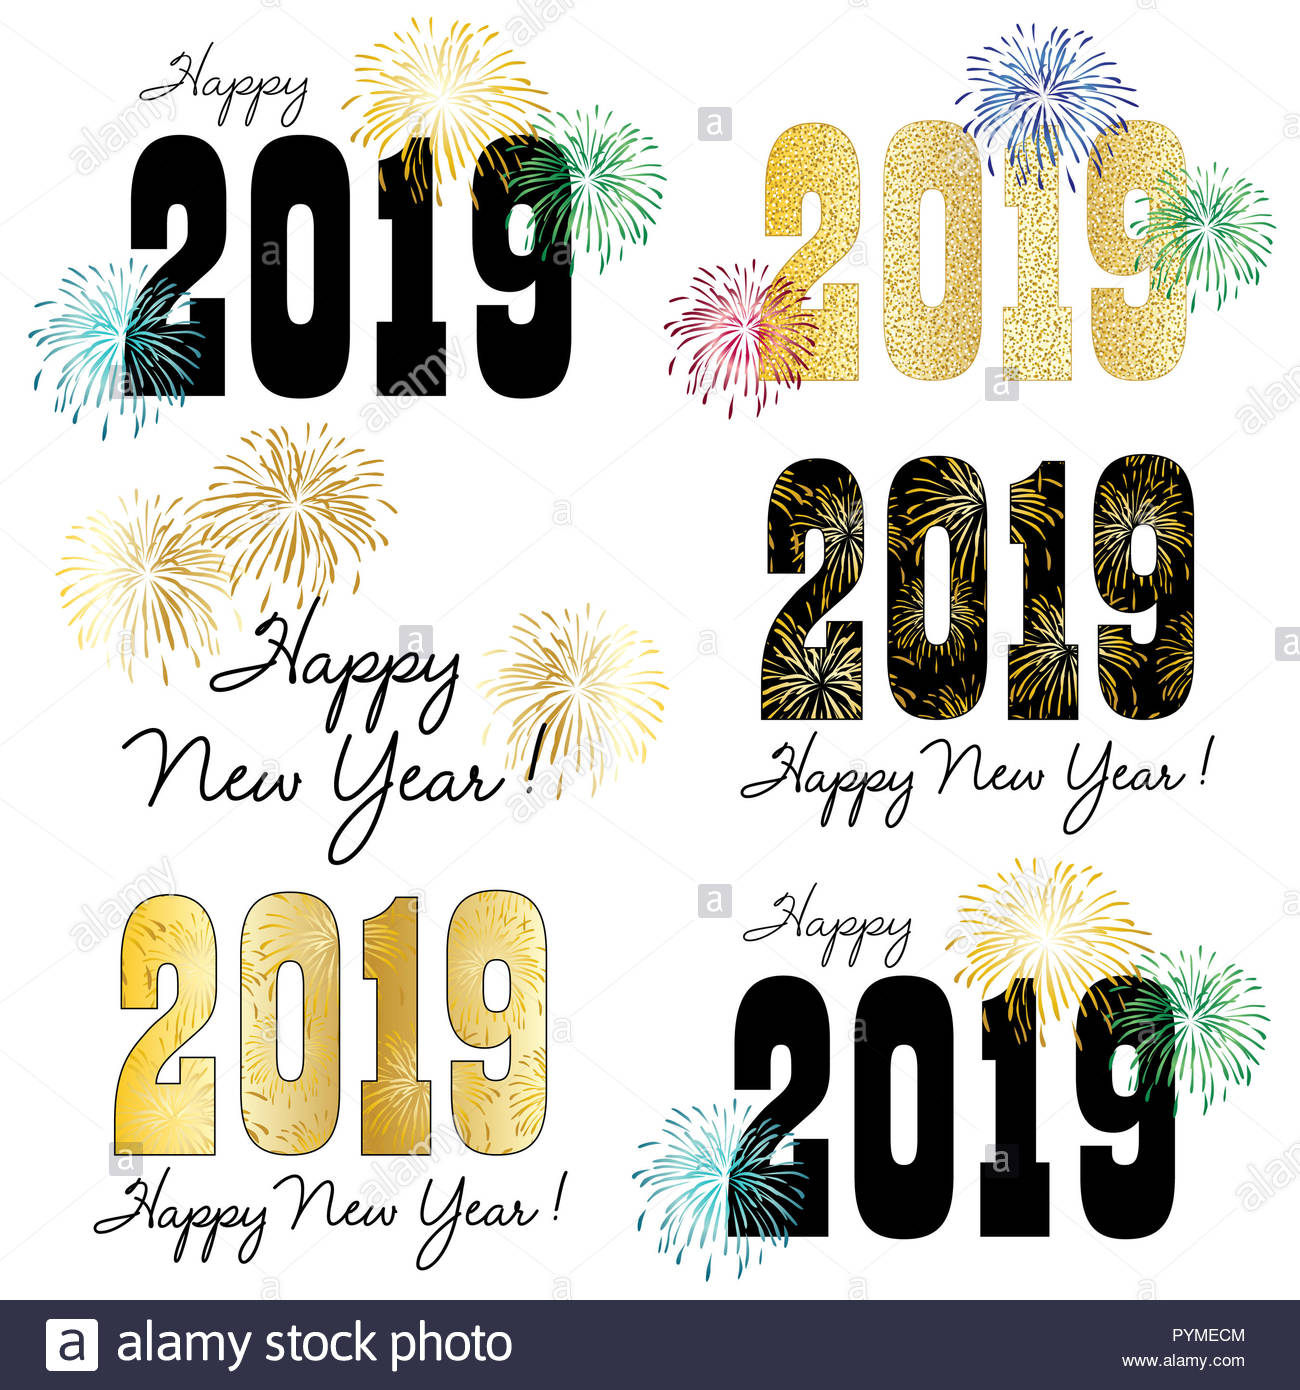 2019 vector graphics with fireworks - Stock Image